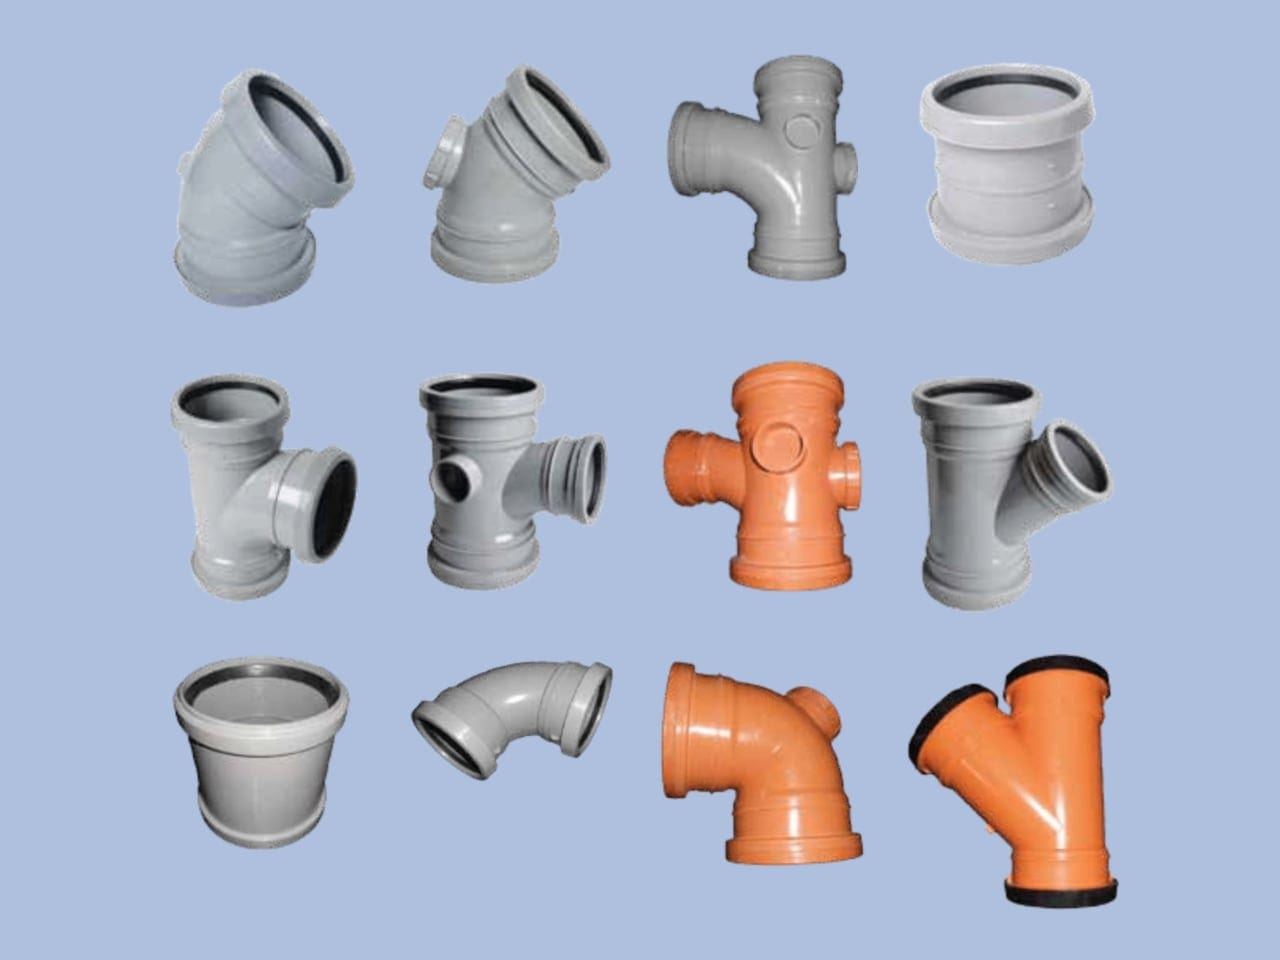 Group of Rubber Push Double Socket fittings by Juma Plastic, Dubai UAE.